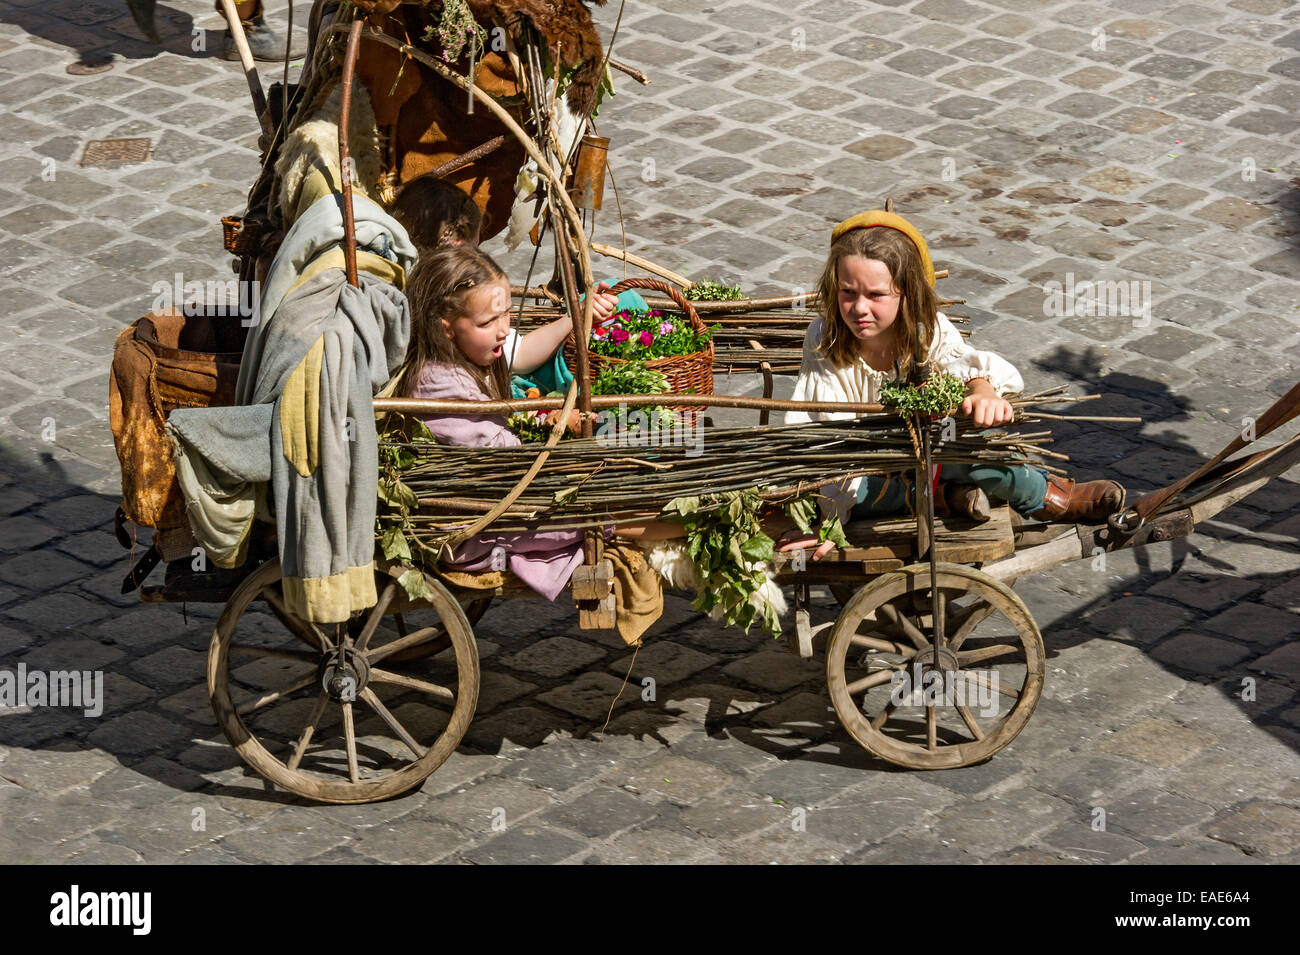 Children in an impoverished cart, wedding procession of the 'Landshut Wedding', historic center, Landshut, - Stock Image